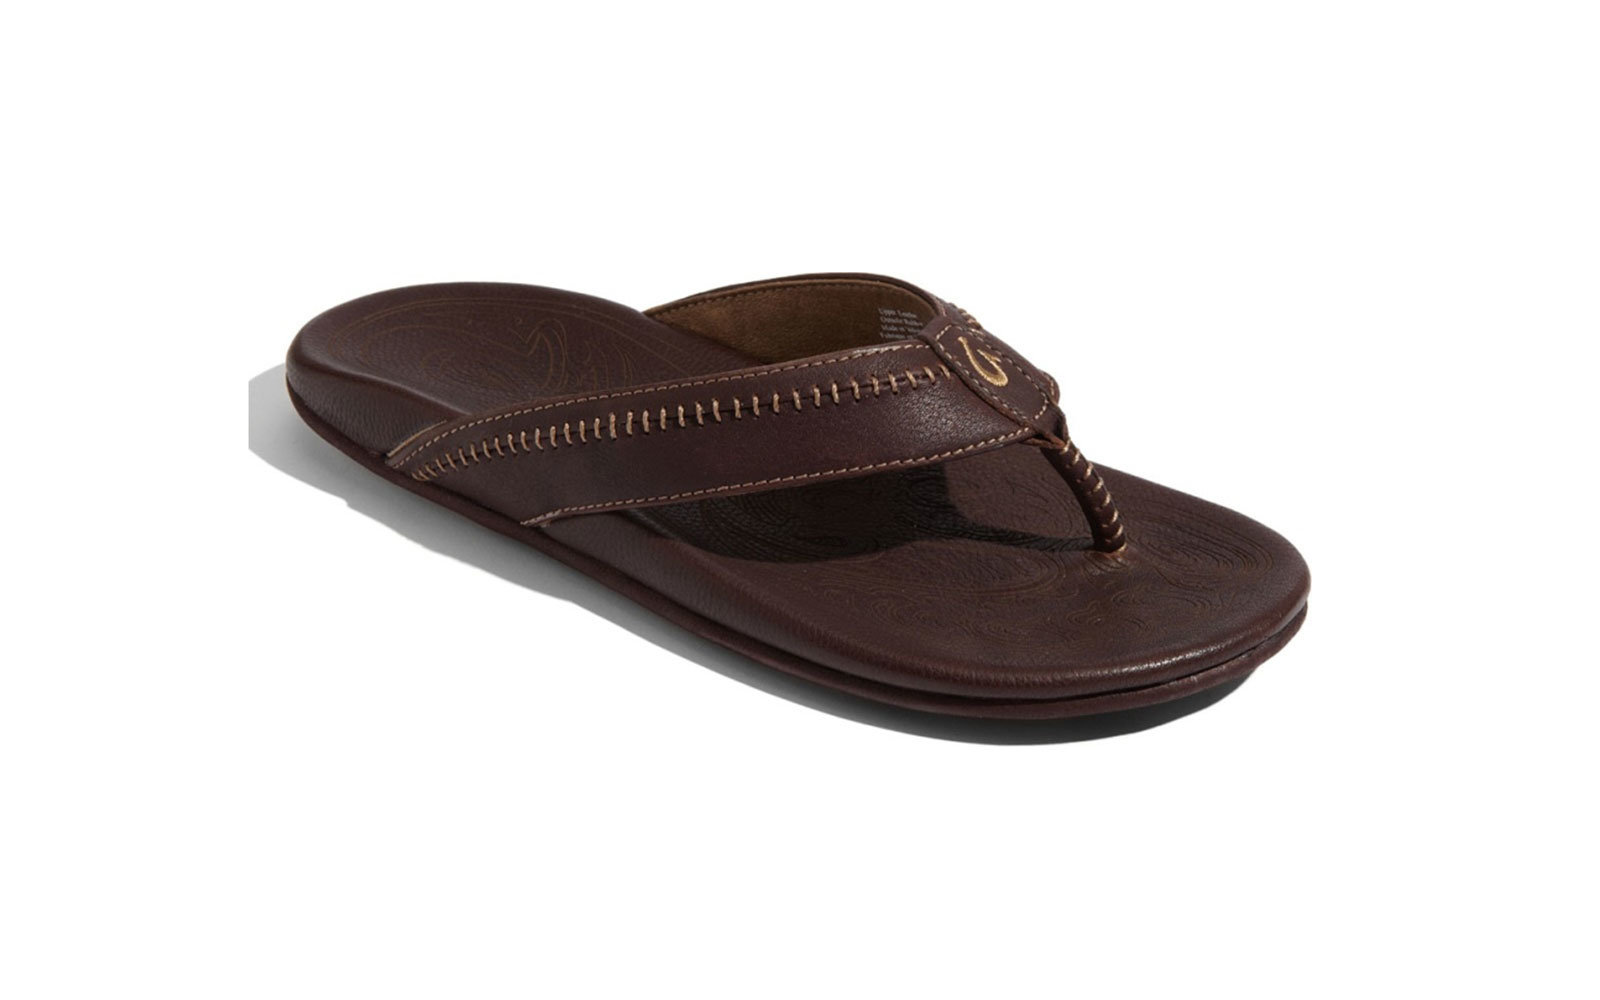 olukai comfy sandals for men